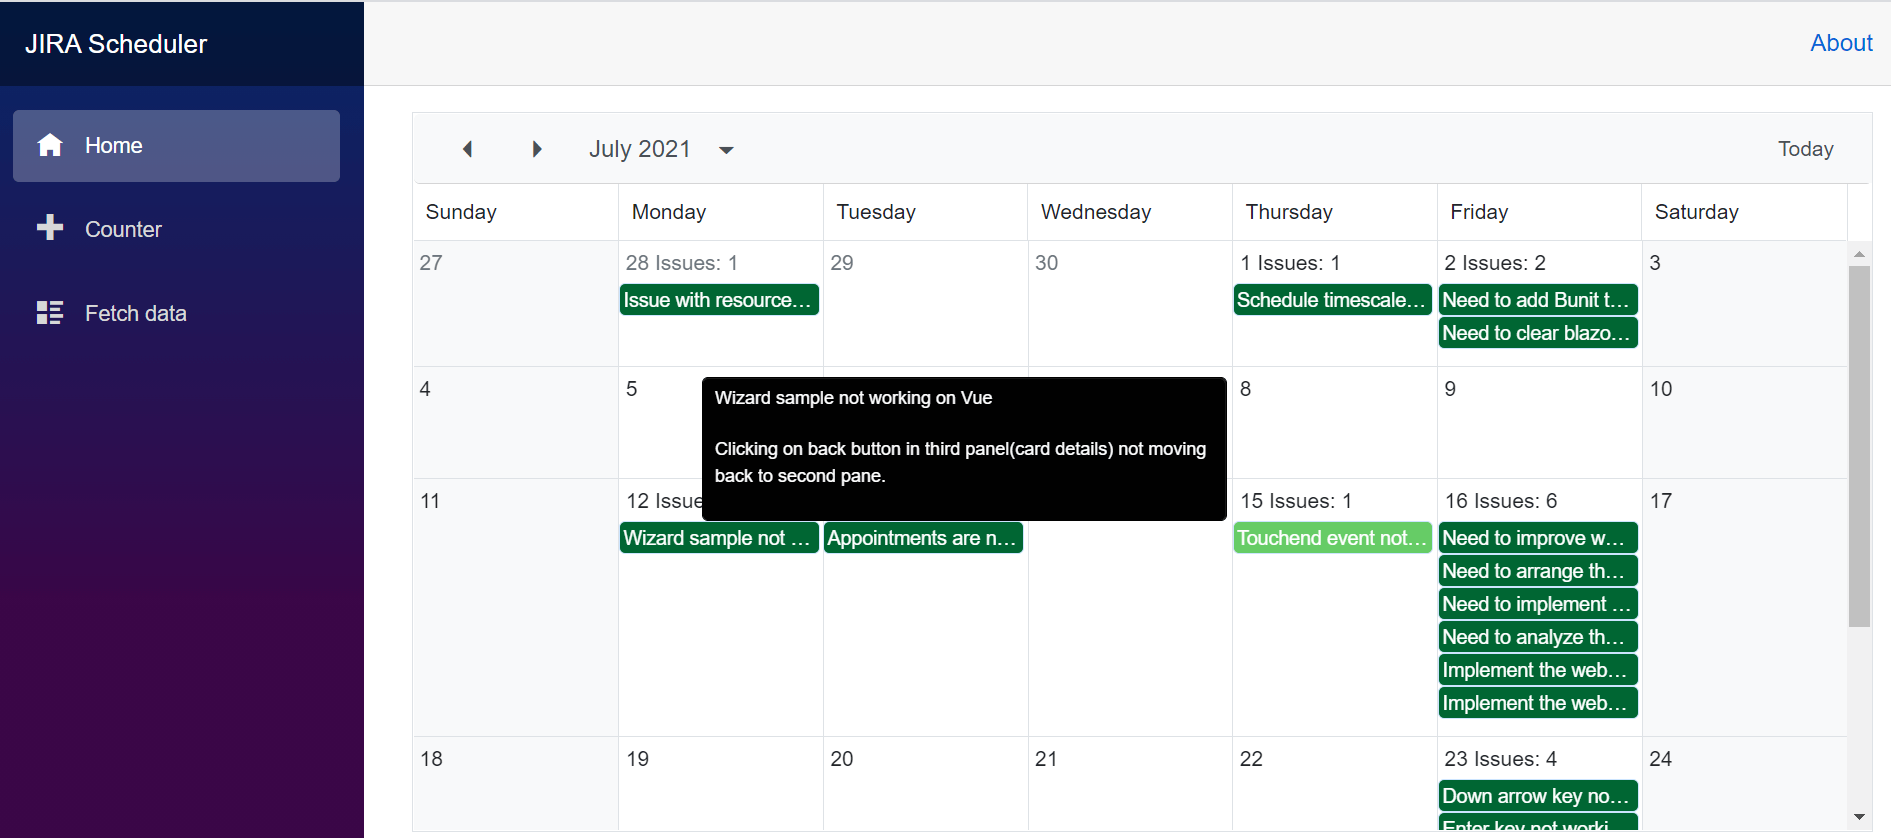 Displaying CustomTooltip on the Appointments